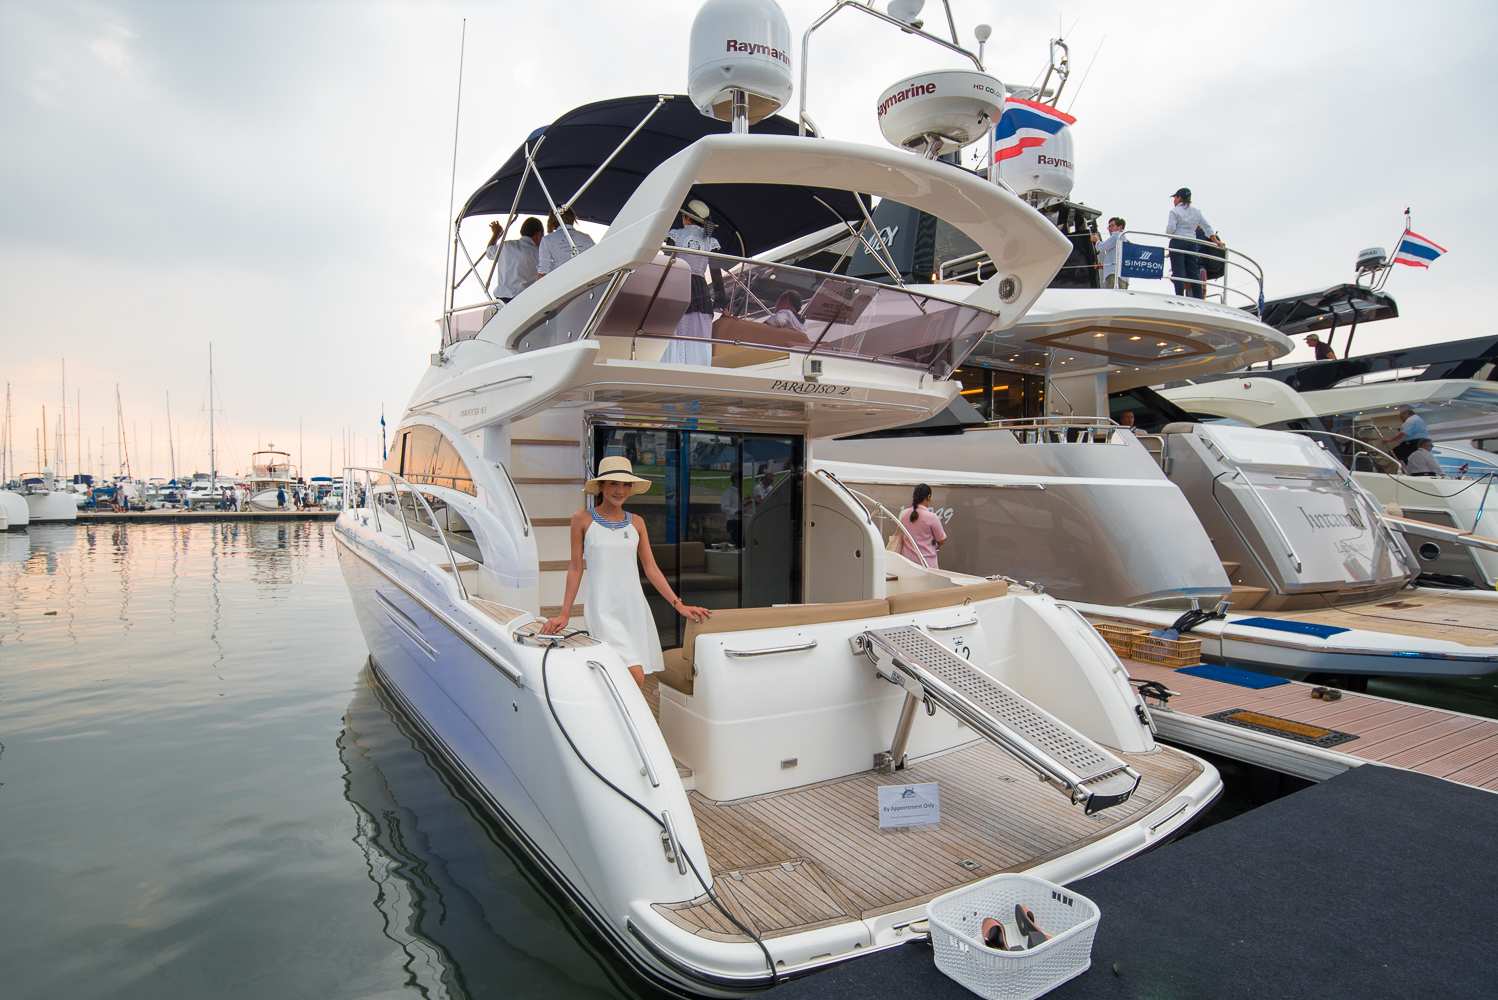 Boat Show Res-143